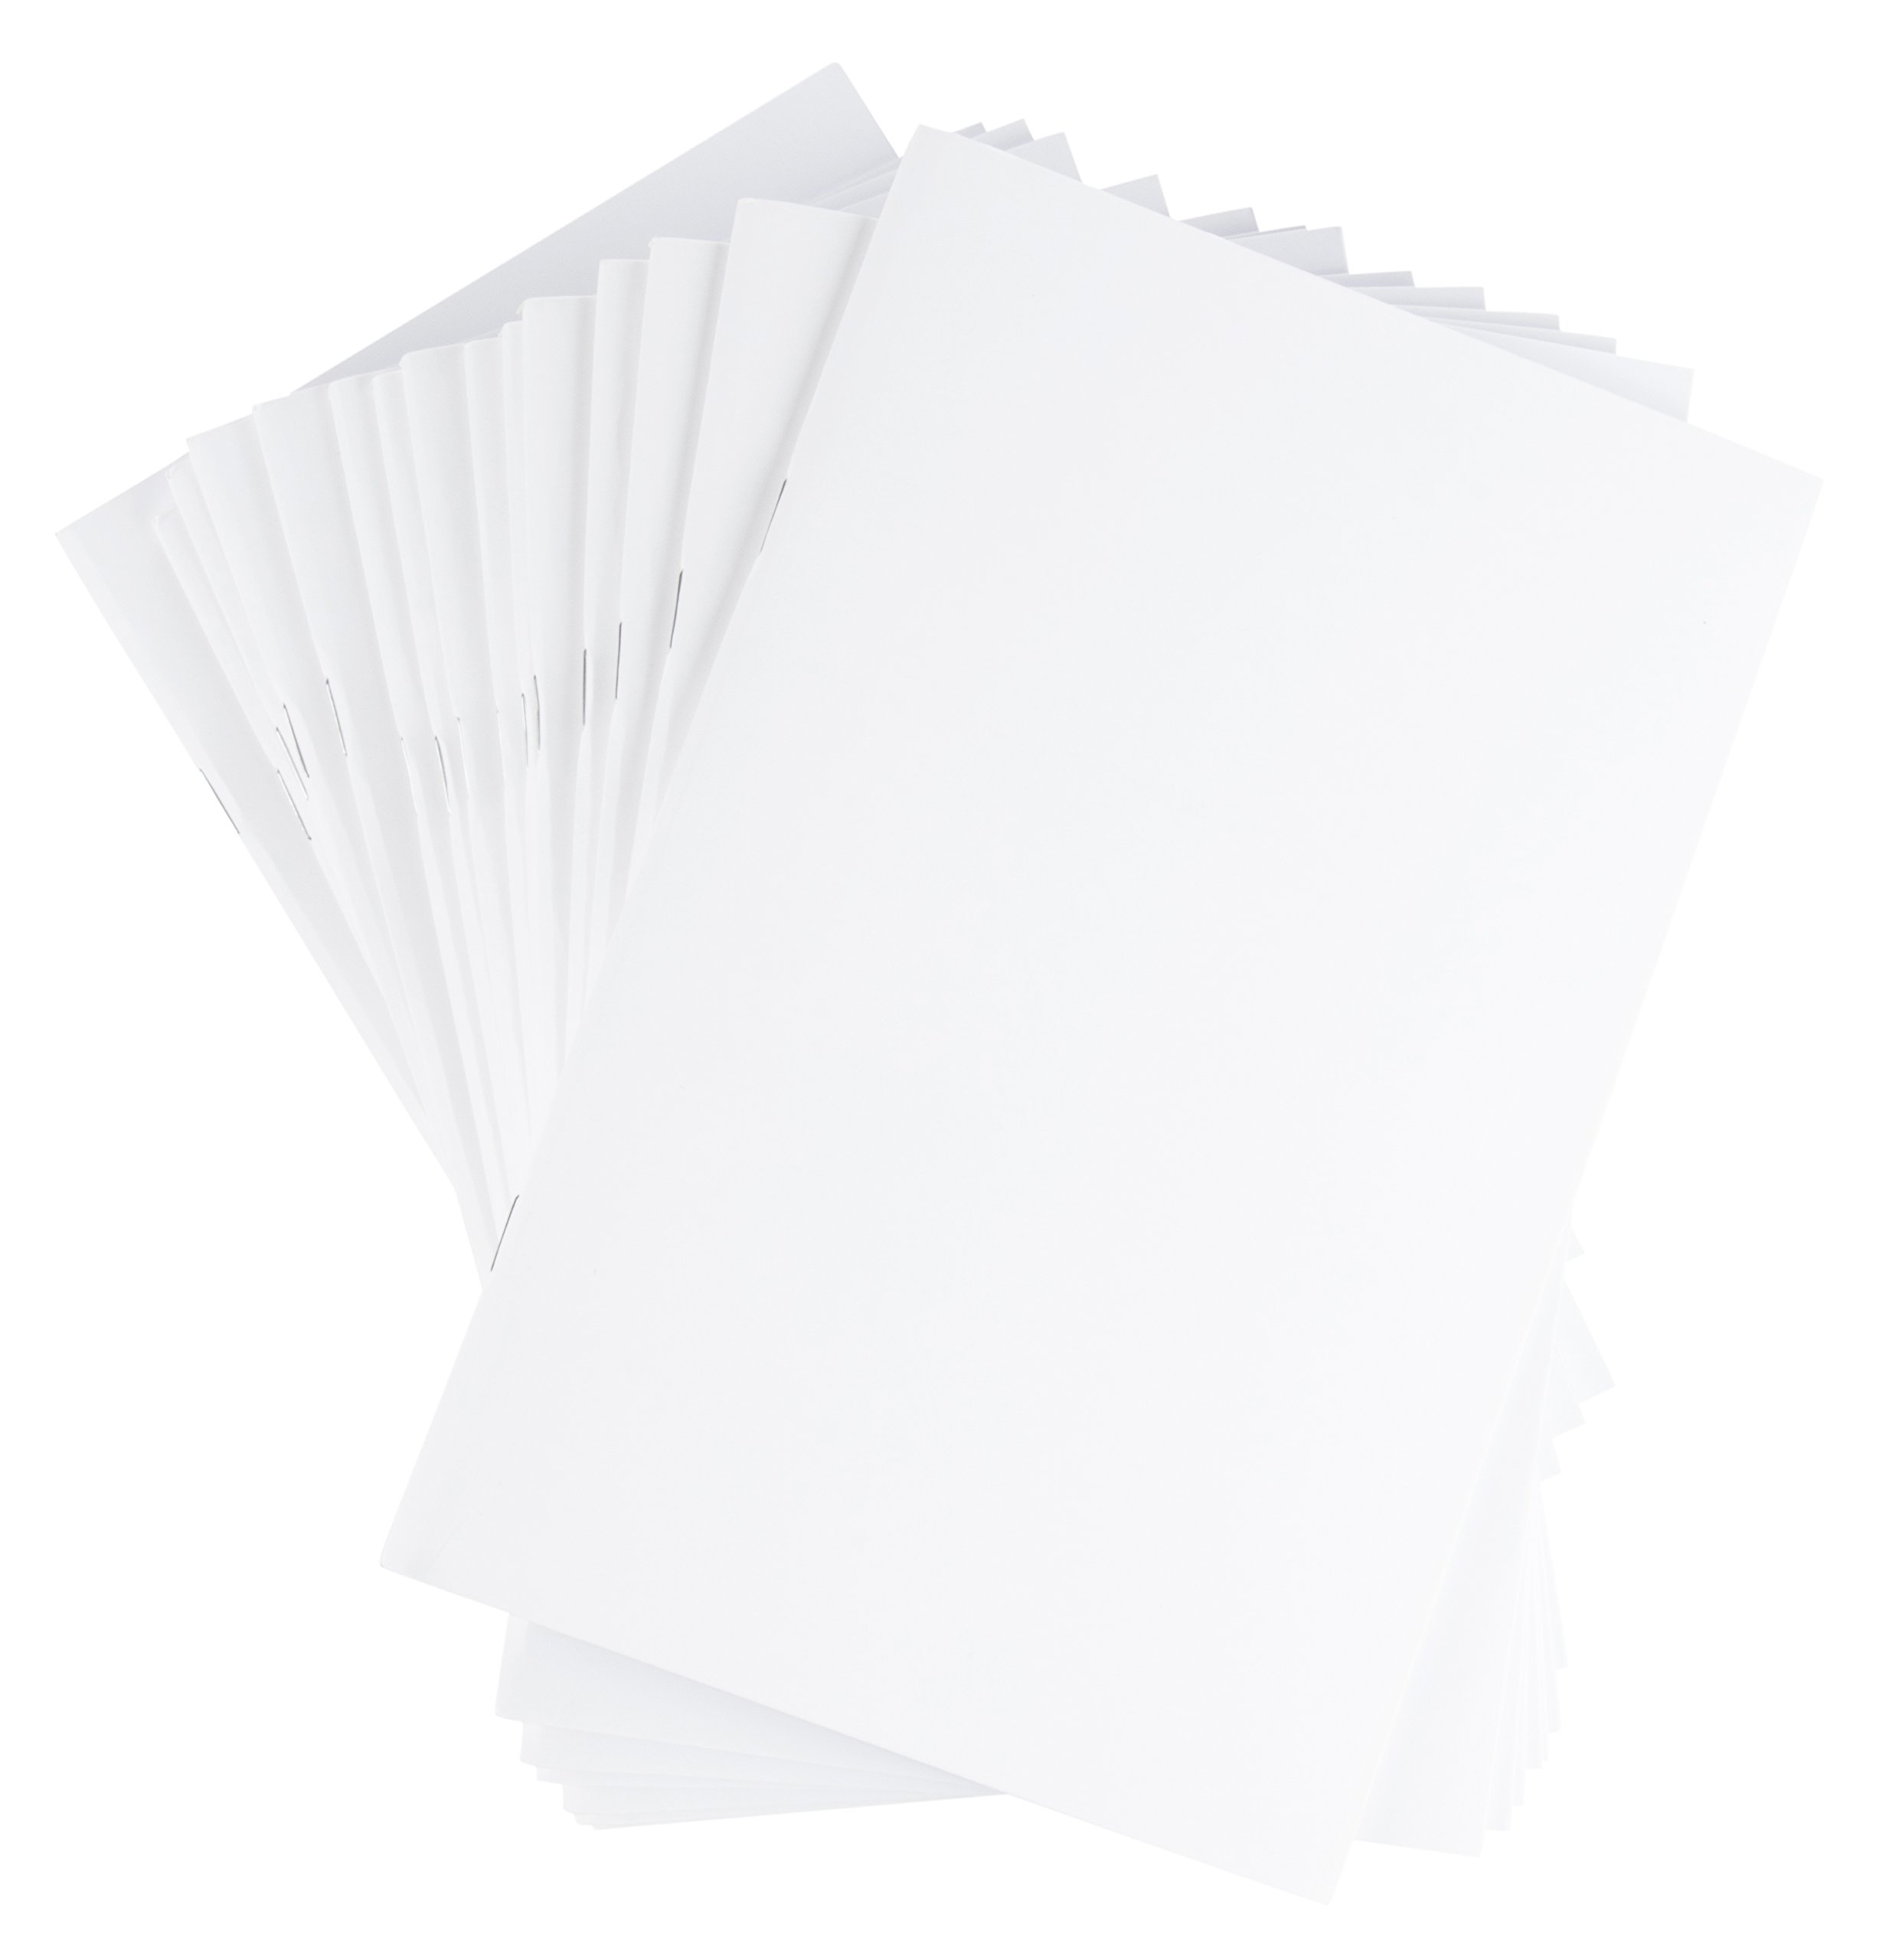 Blank Notebook - 24-Pack Unlined Books, Unruled Plain Travel Journals for Students, School, Children's Writing Books, Creative Class Project, White, 5.5 x 8.5 Inches, Half Letter Sized, 24 Sheets Each